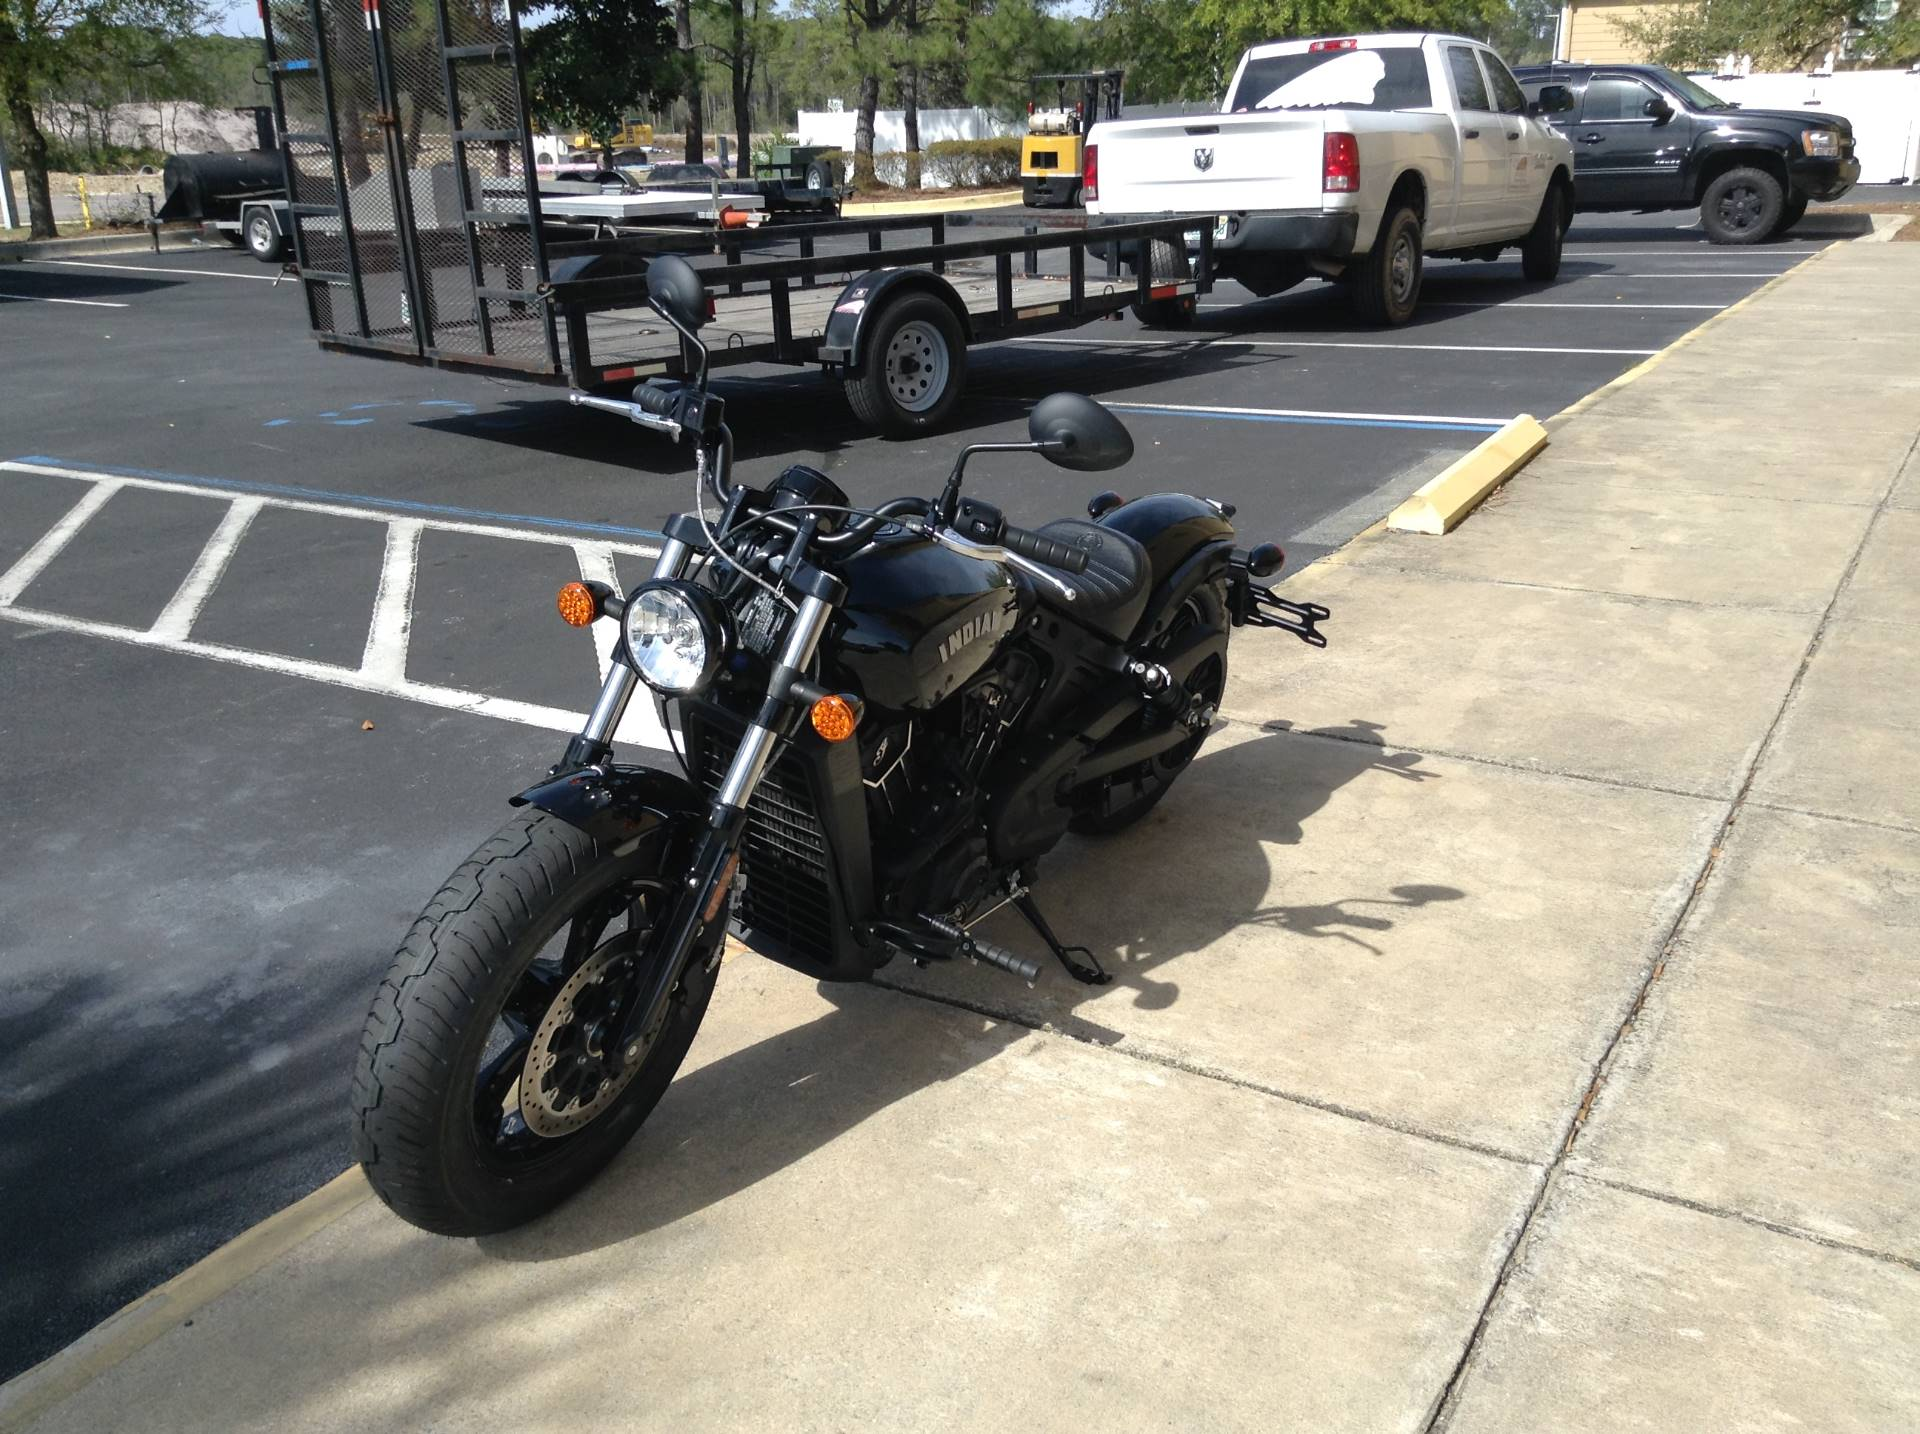 2020 Indian SCOUT BOBBER 60 in Panama City Beach, Florida - Photo 12